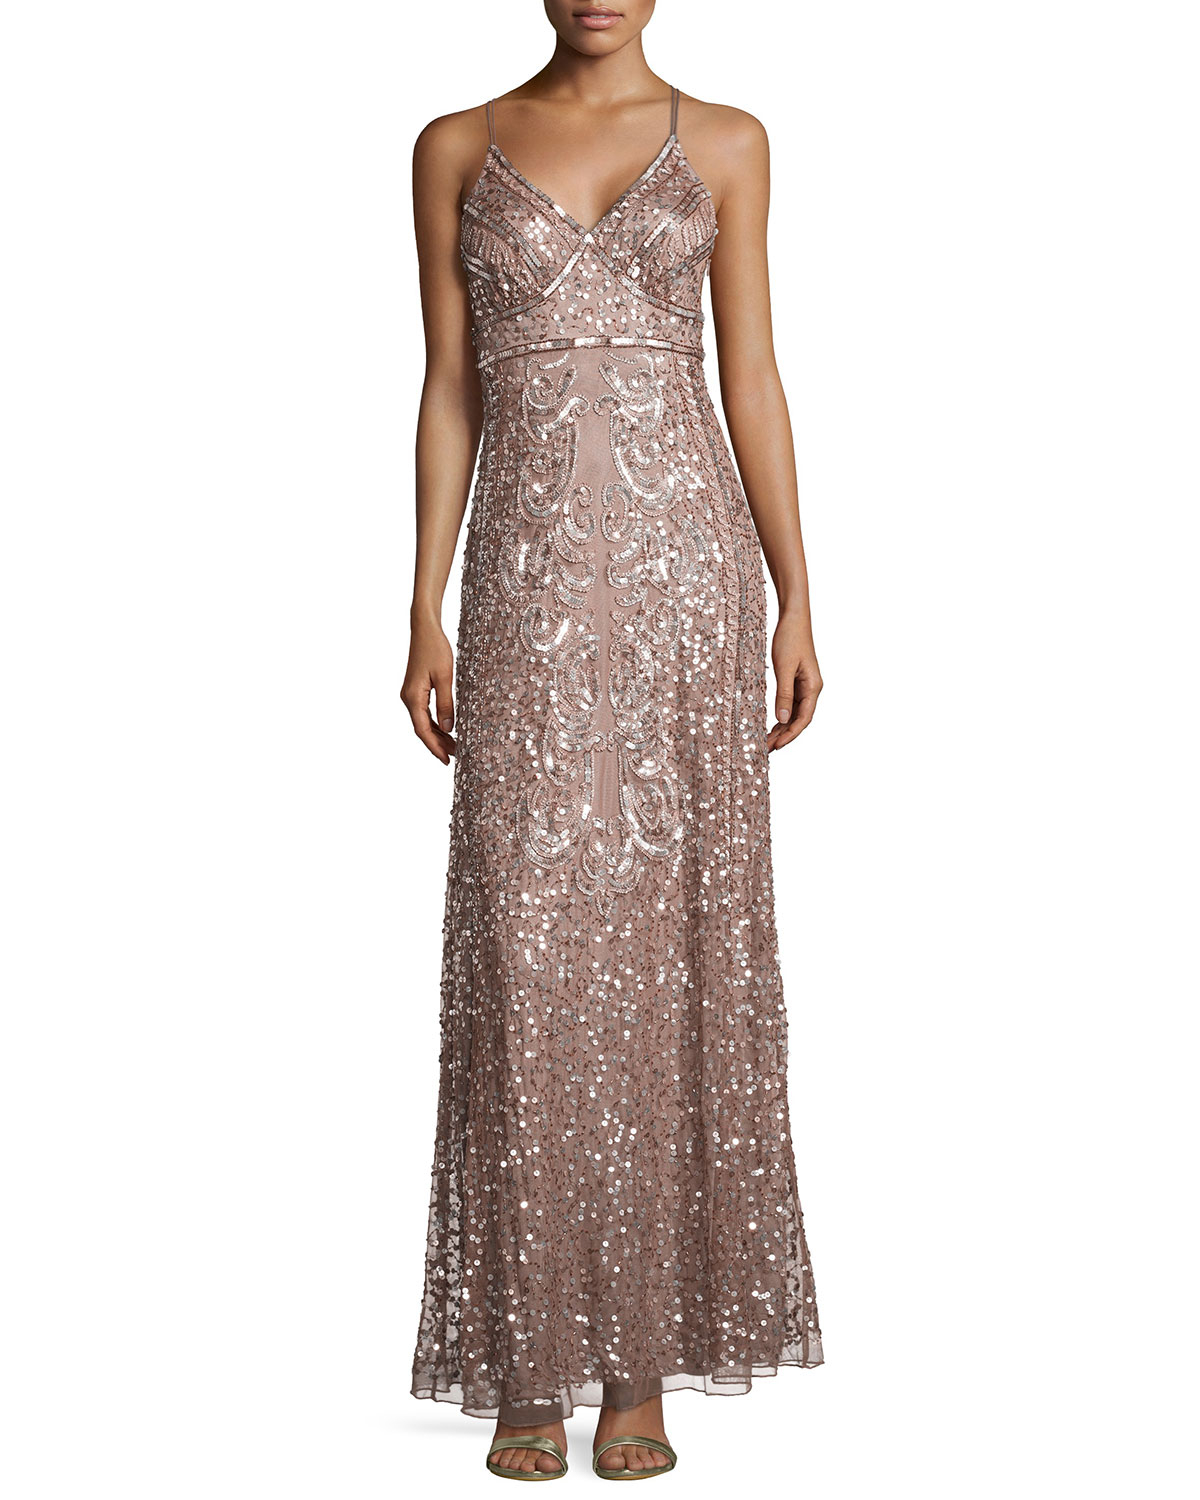 Lyst - Marina Sequin-embellished Mesh Gown in Pink